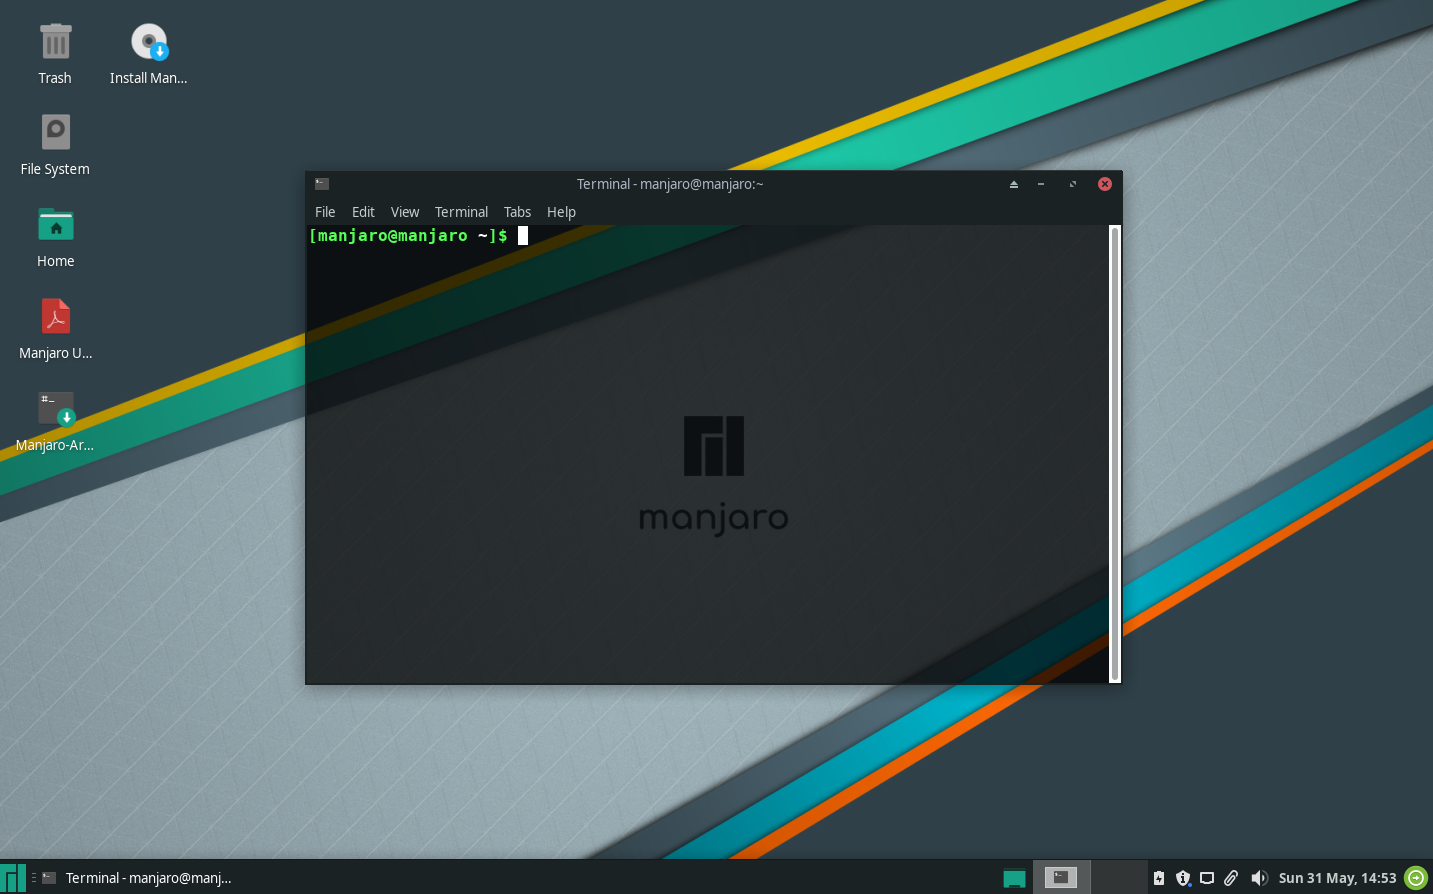 images/welcome-to-manjaro/terminal.png